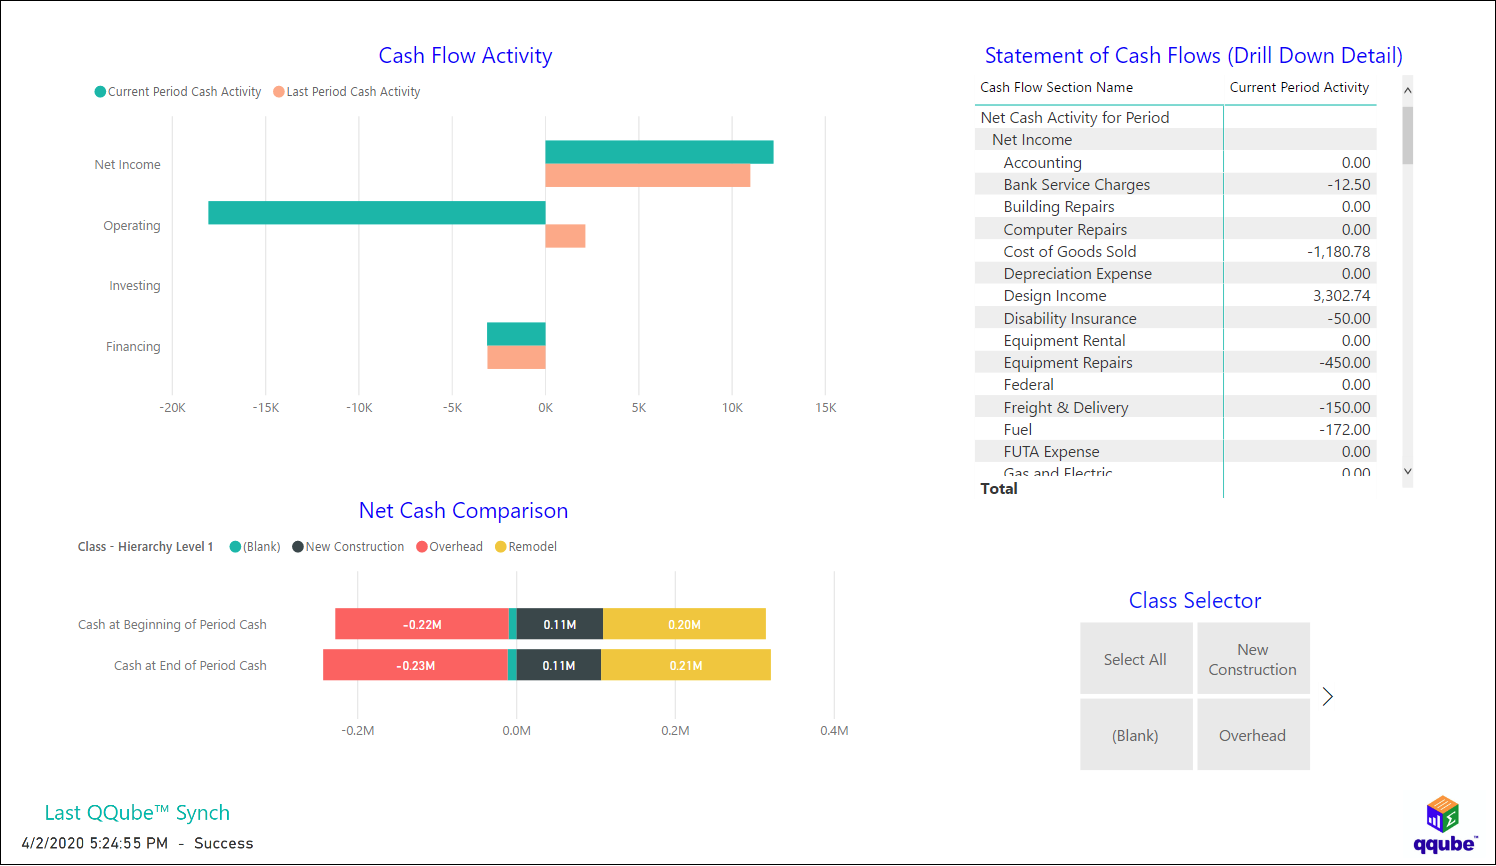 QuickBooks Statement of Cash Flows by Class using QQube with Power BI